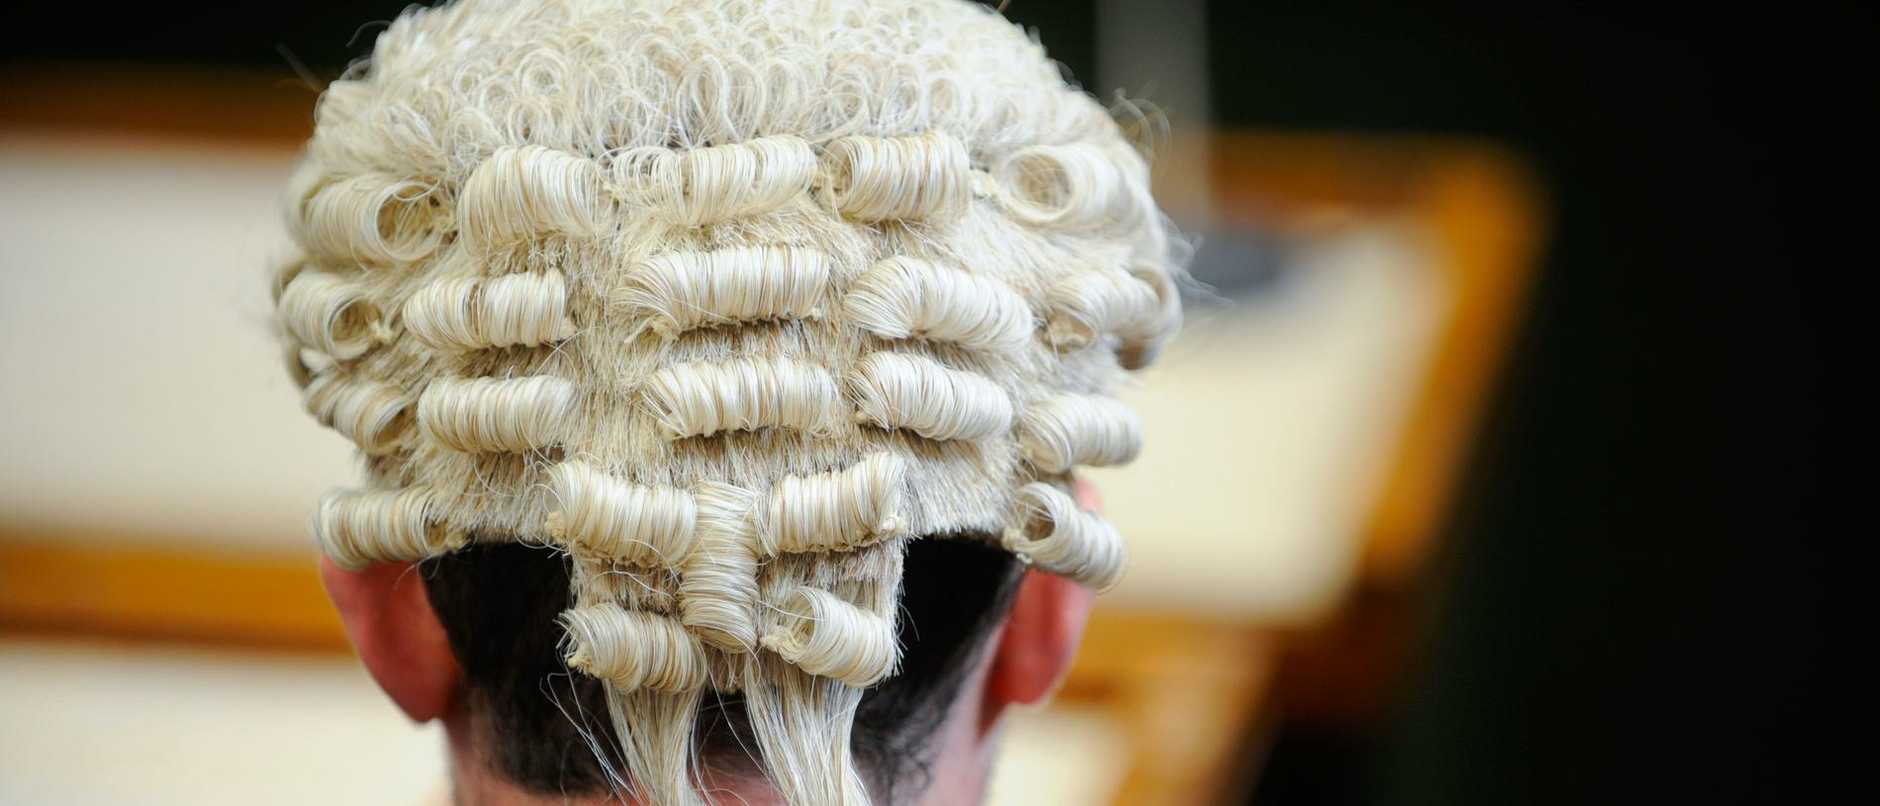 Generic Law court picture a member of the bar wearing barristers wig.. Image shot 2008. Exact date unknown.